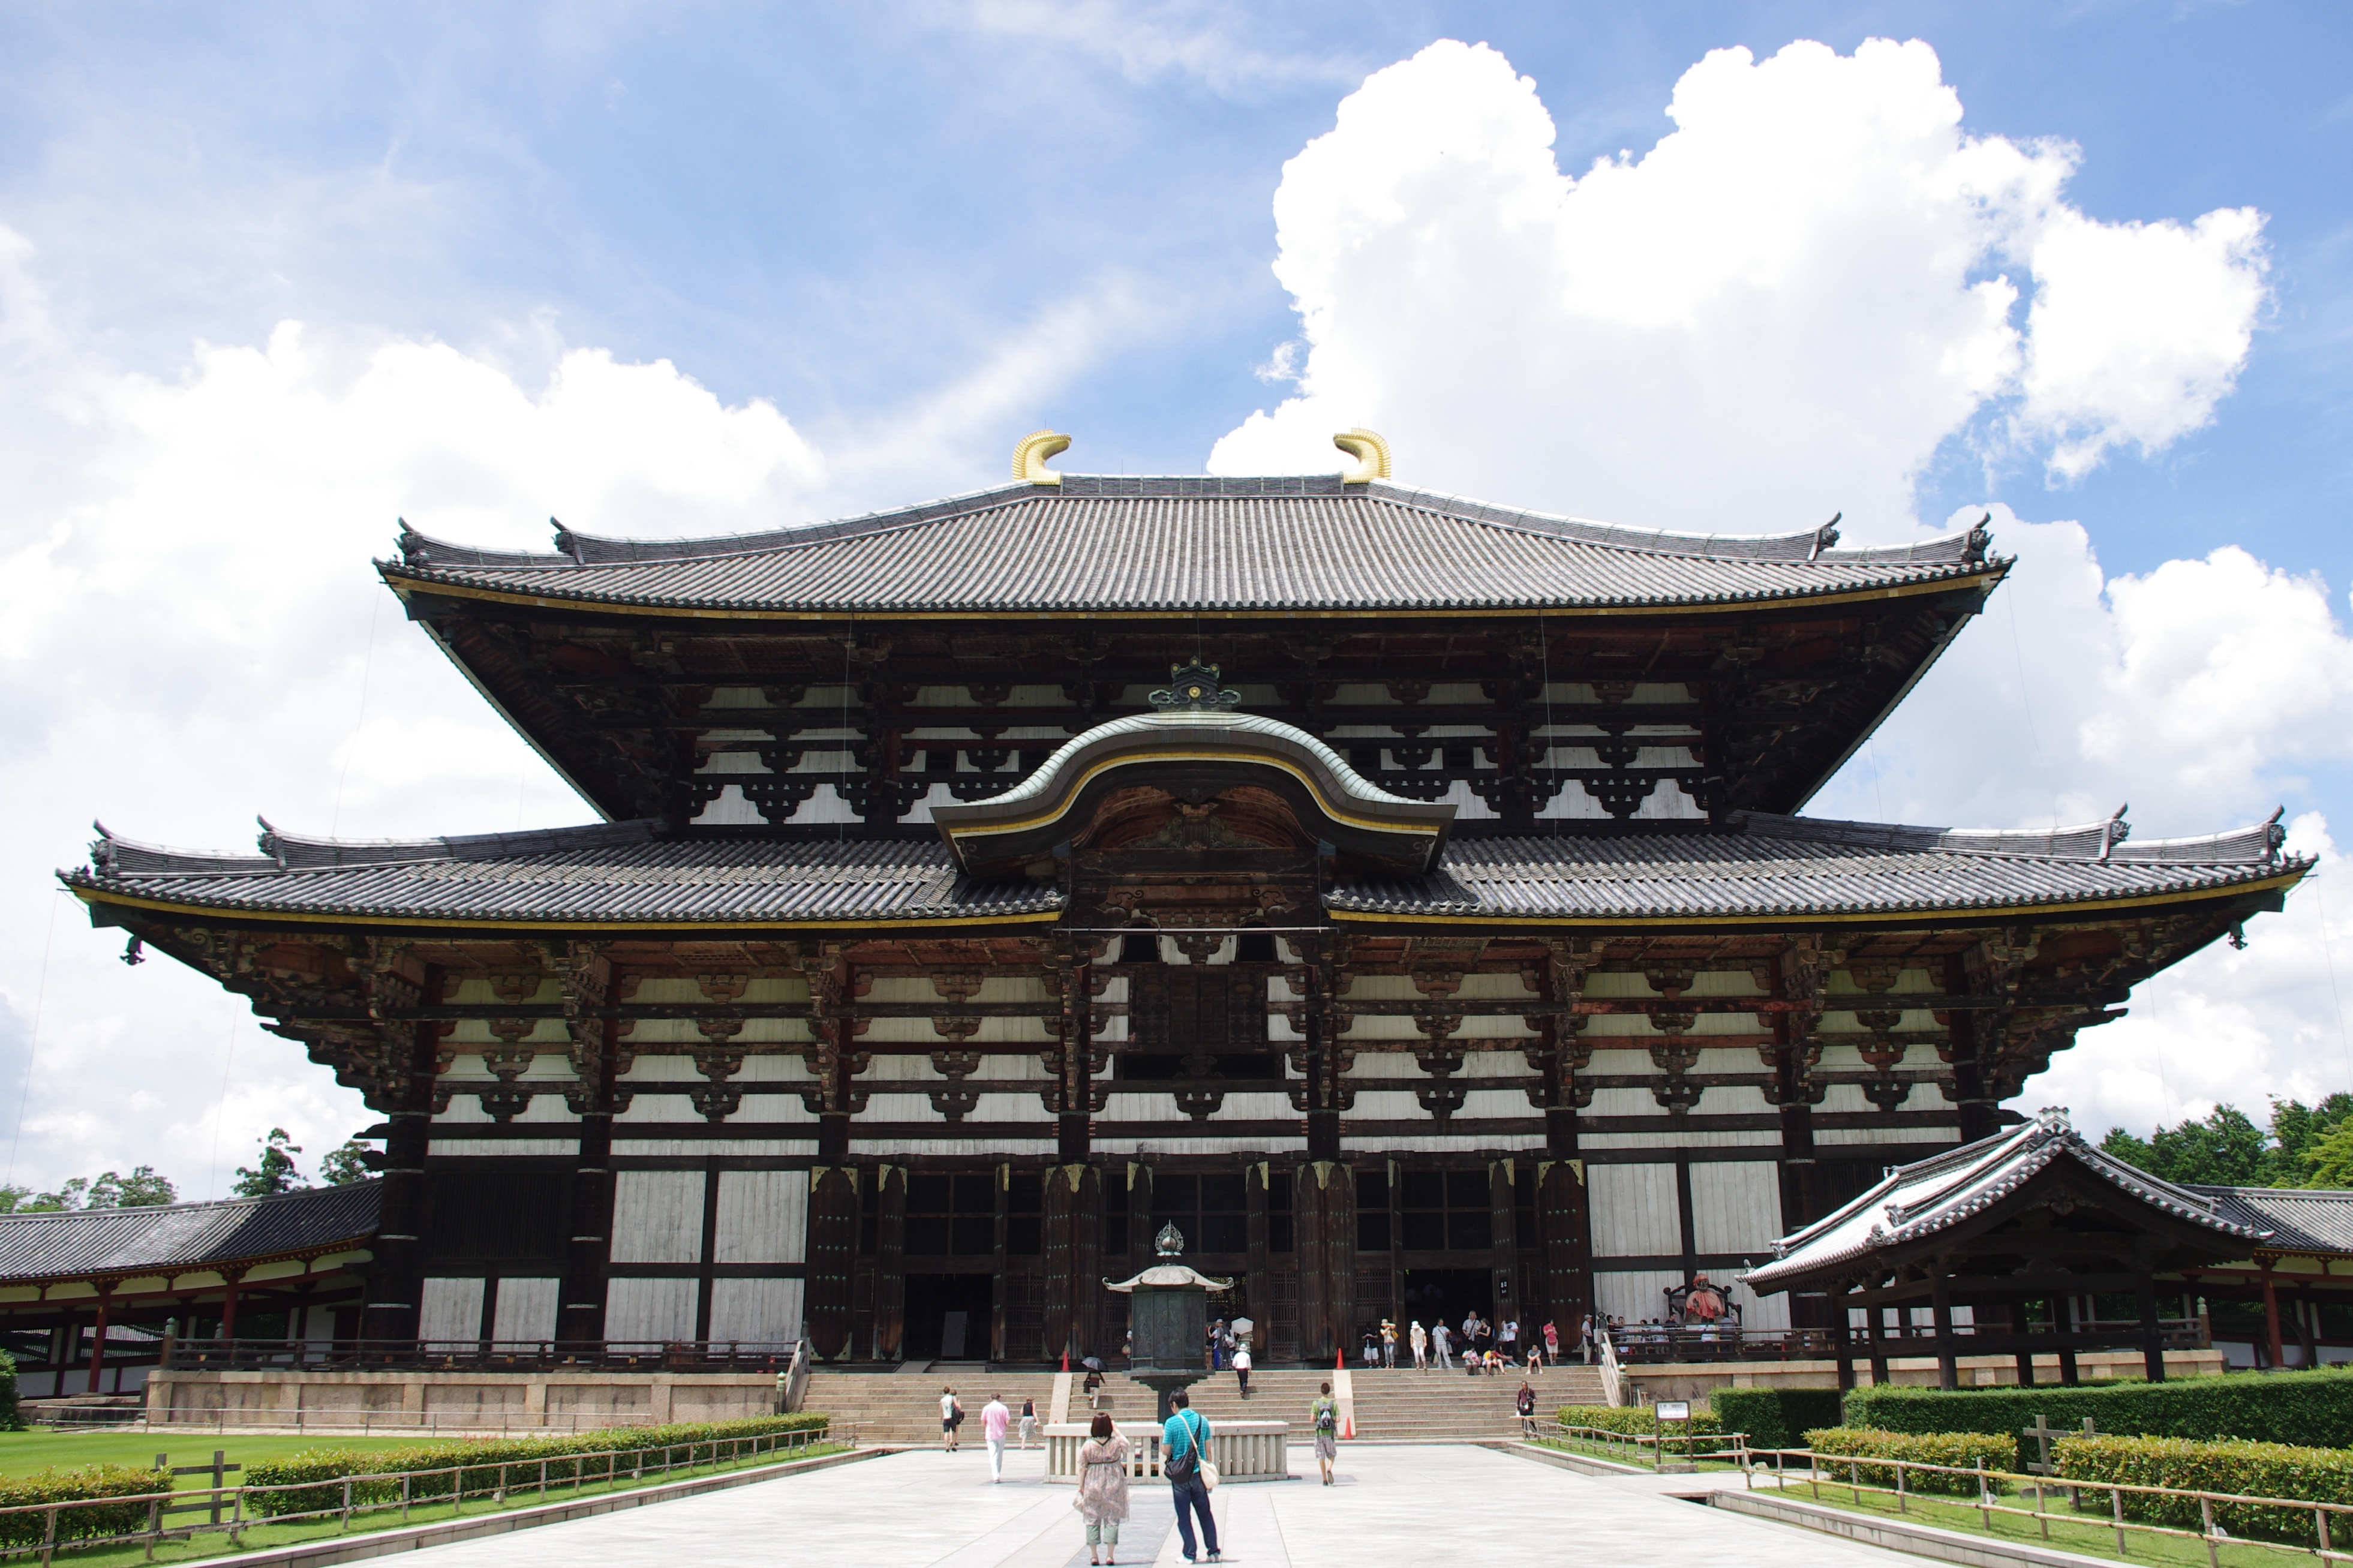 File:20100716 Nara Todaiji Golden Hall 2285.jpg